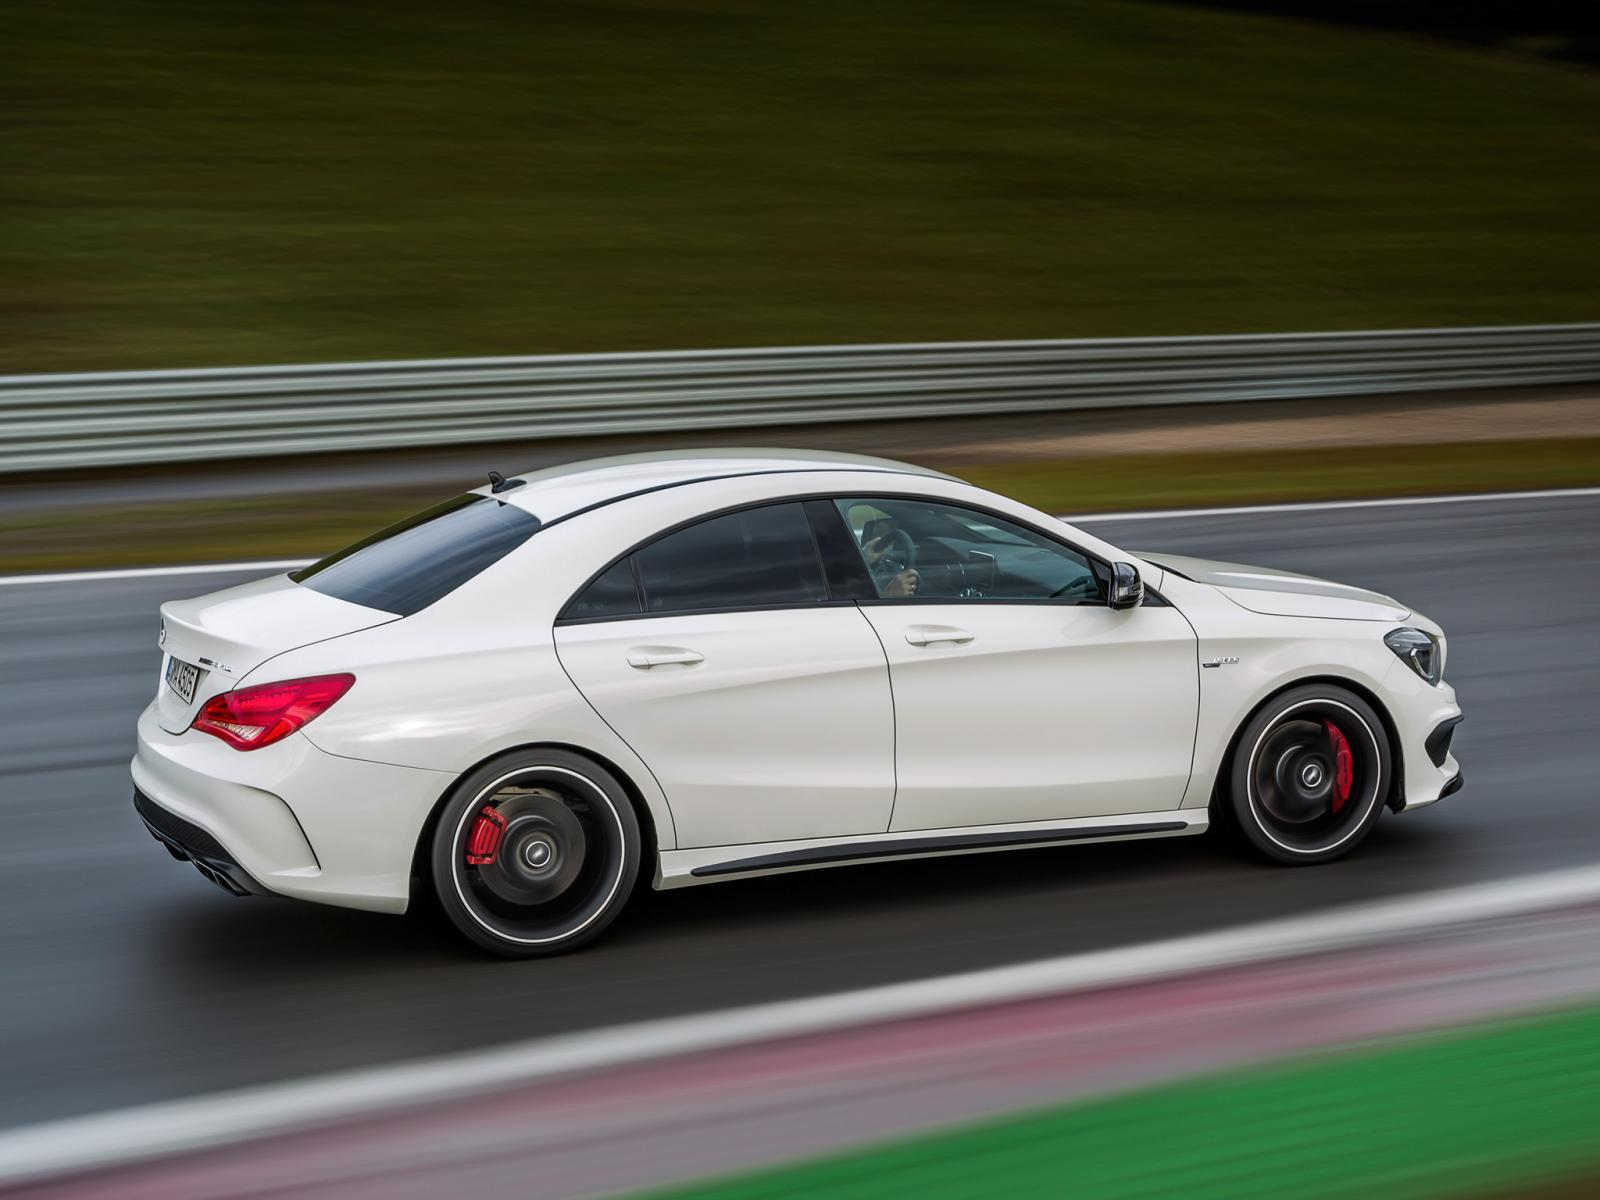 Mercedes benz cla 45 amg revealed ahead of new york debut for The price of mercedes benz